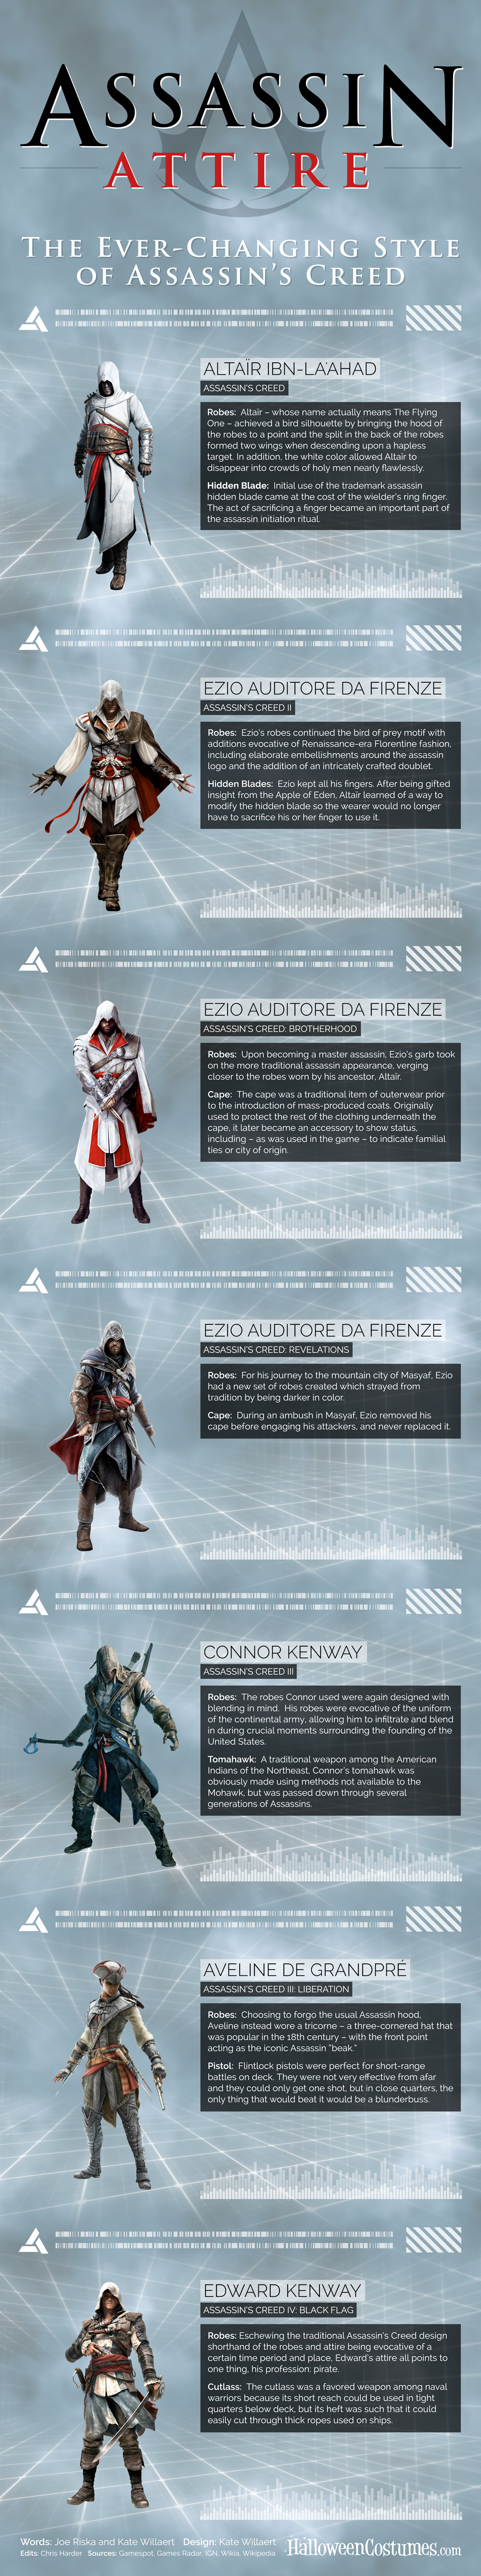 Assassin's Creed Costumes Changes